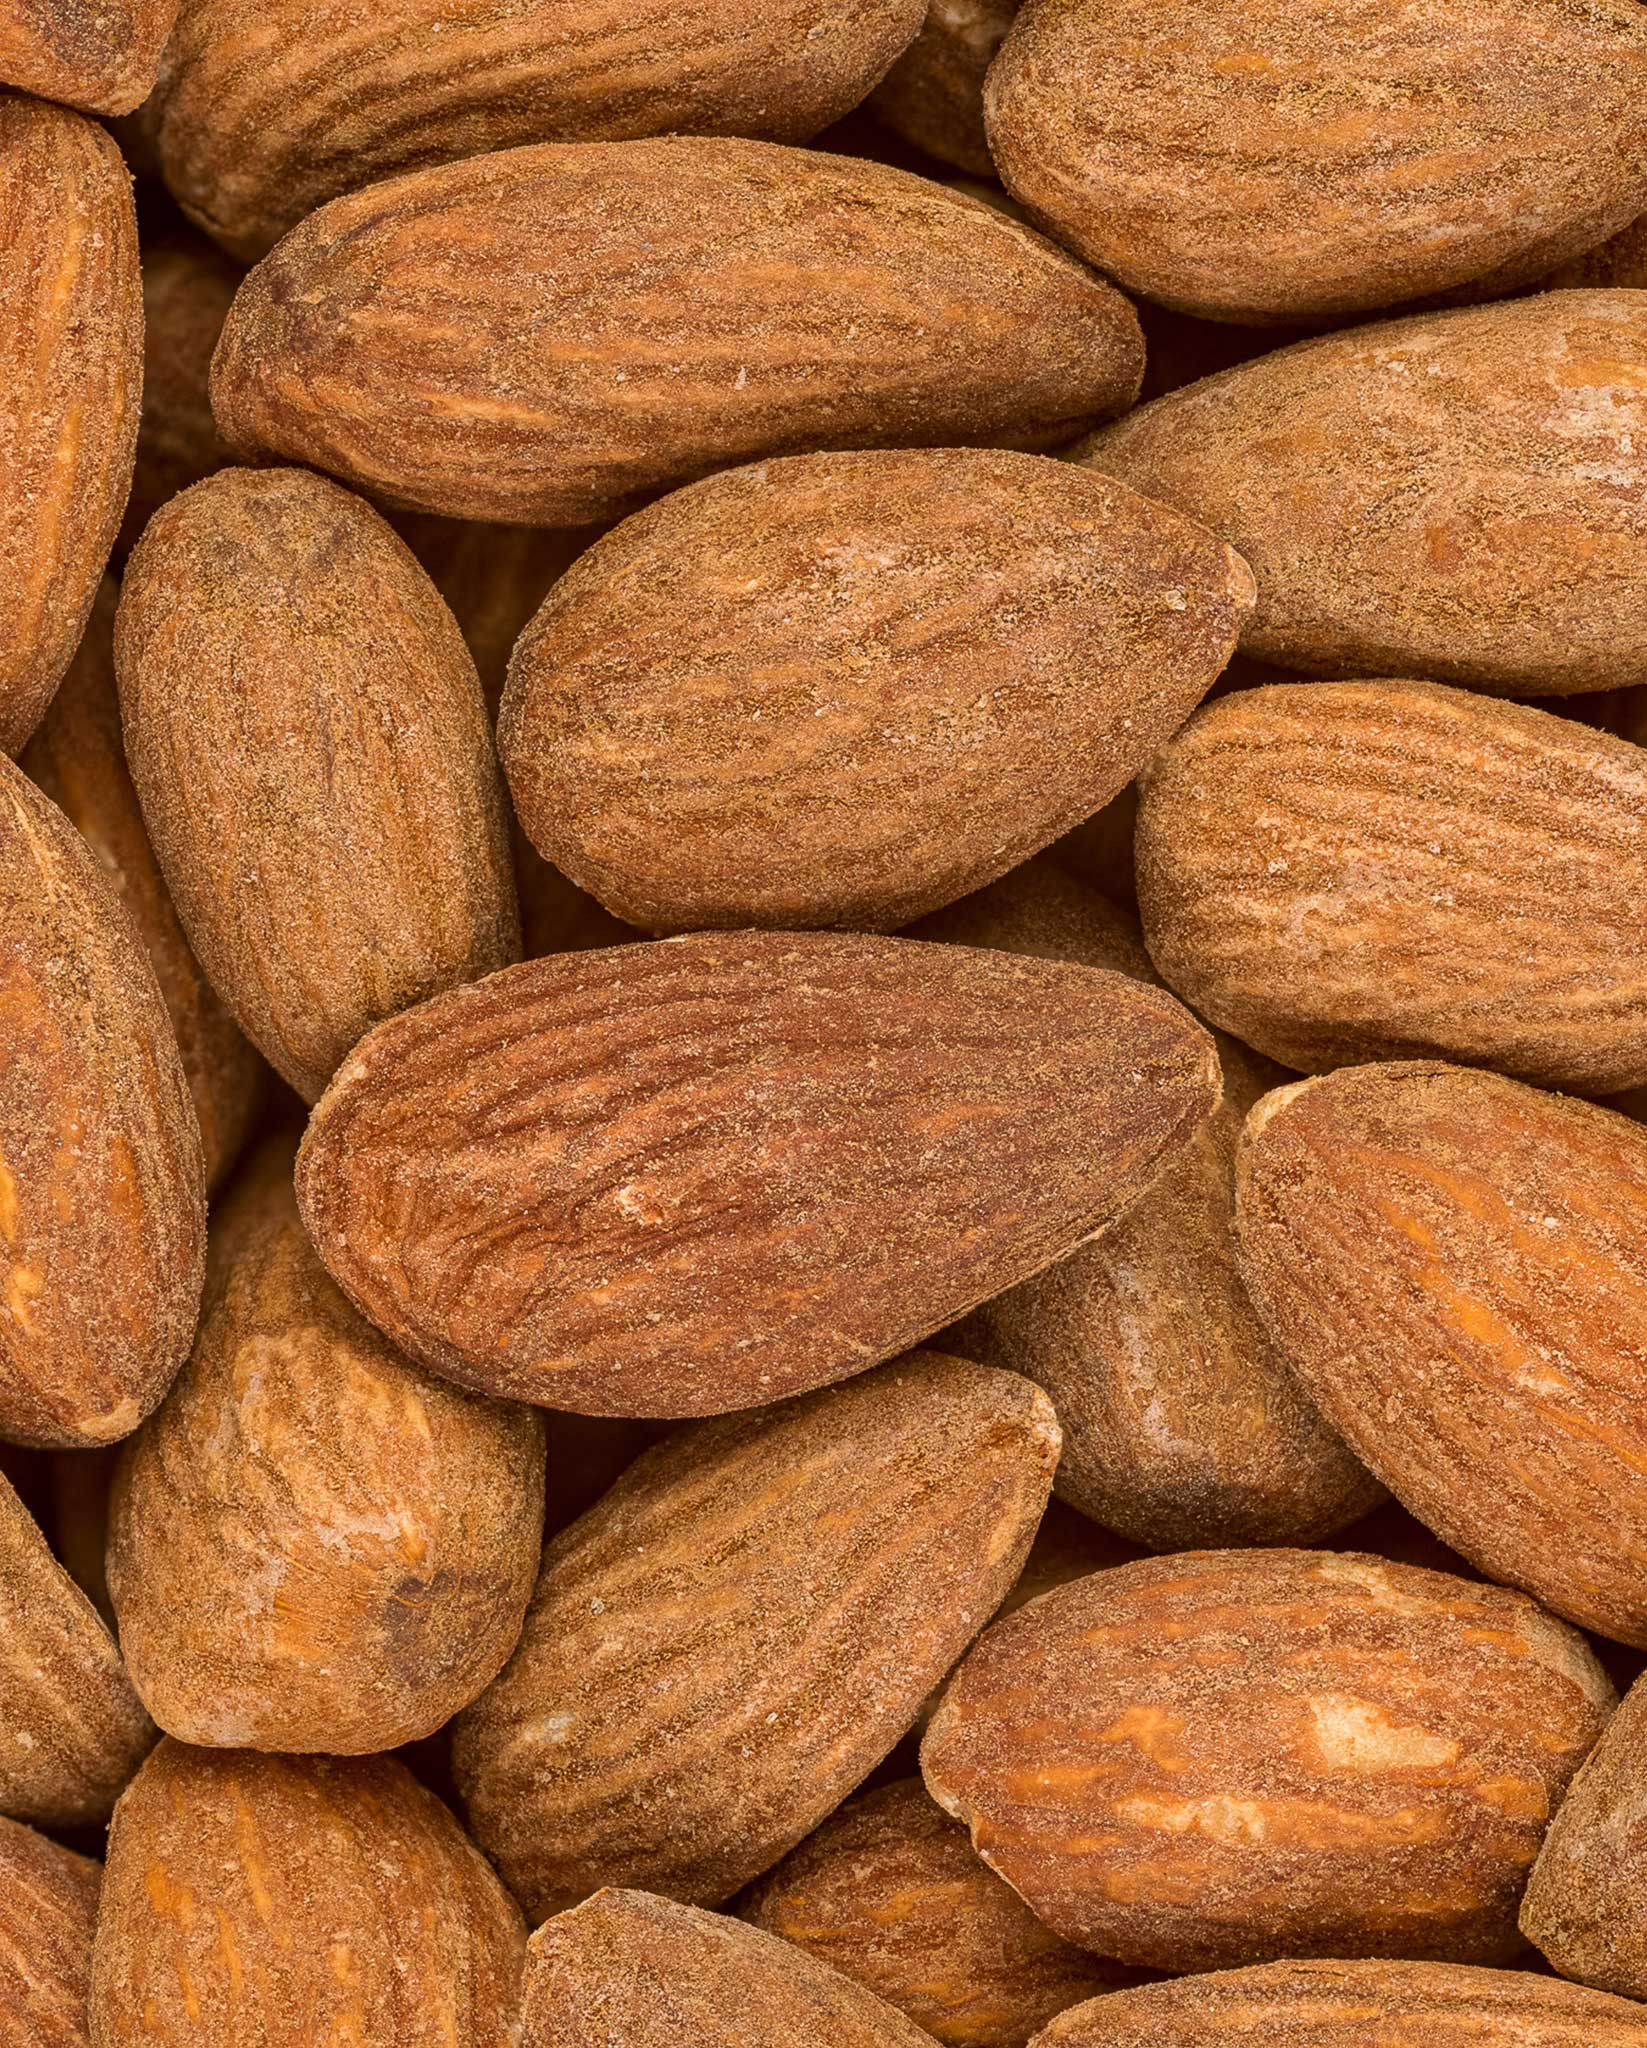 Almonds-(Vertical)